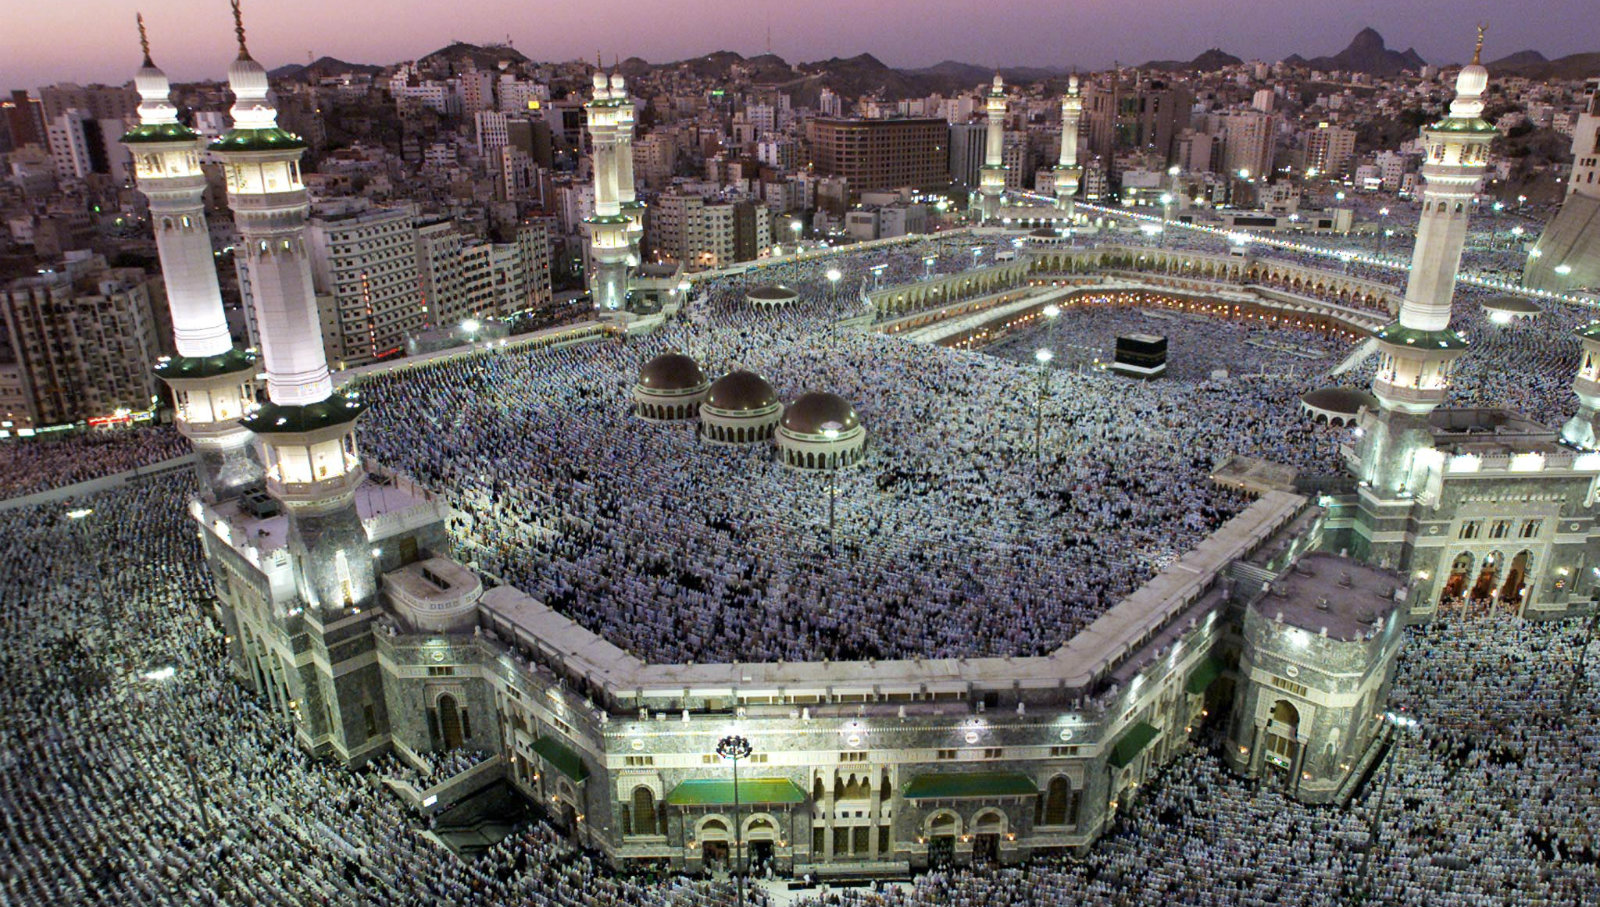 A view of Haram, where the Kaaba is located, in the holy city of Mecca, during sunset February 18, 2002 as about two million Muslim pilgrims gather for their Haj pilgrimage. The Haj is one of a Muslim's duties, as described in the five pillars of Islam, to go on a Haj at least once during his or her lifetime, if affordable.